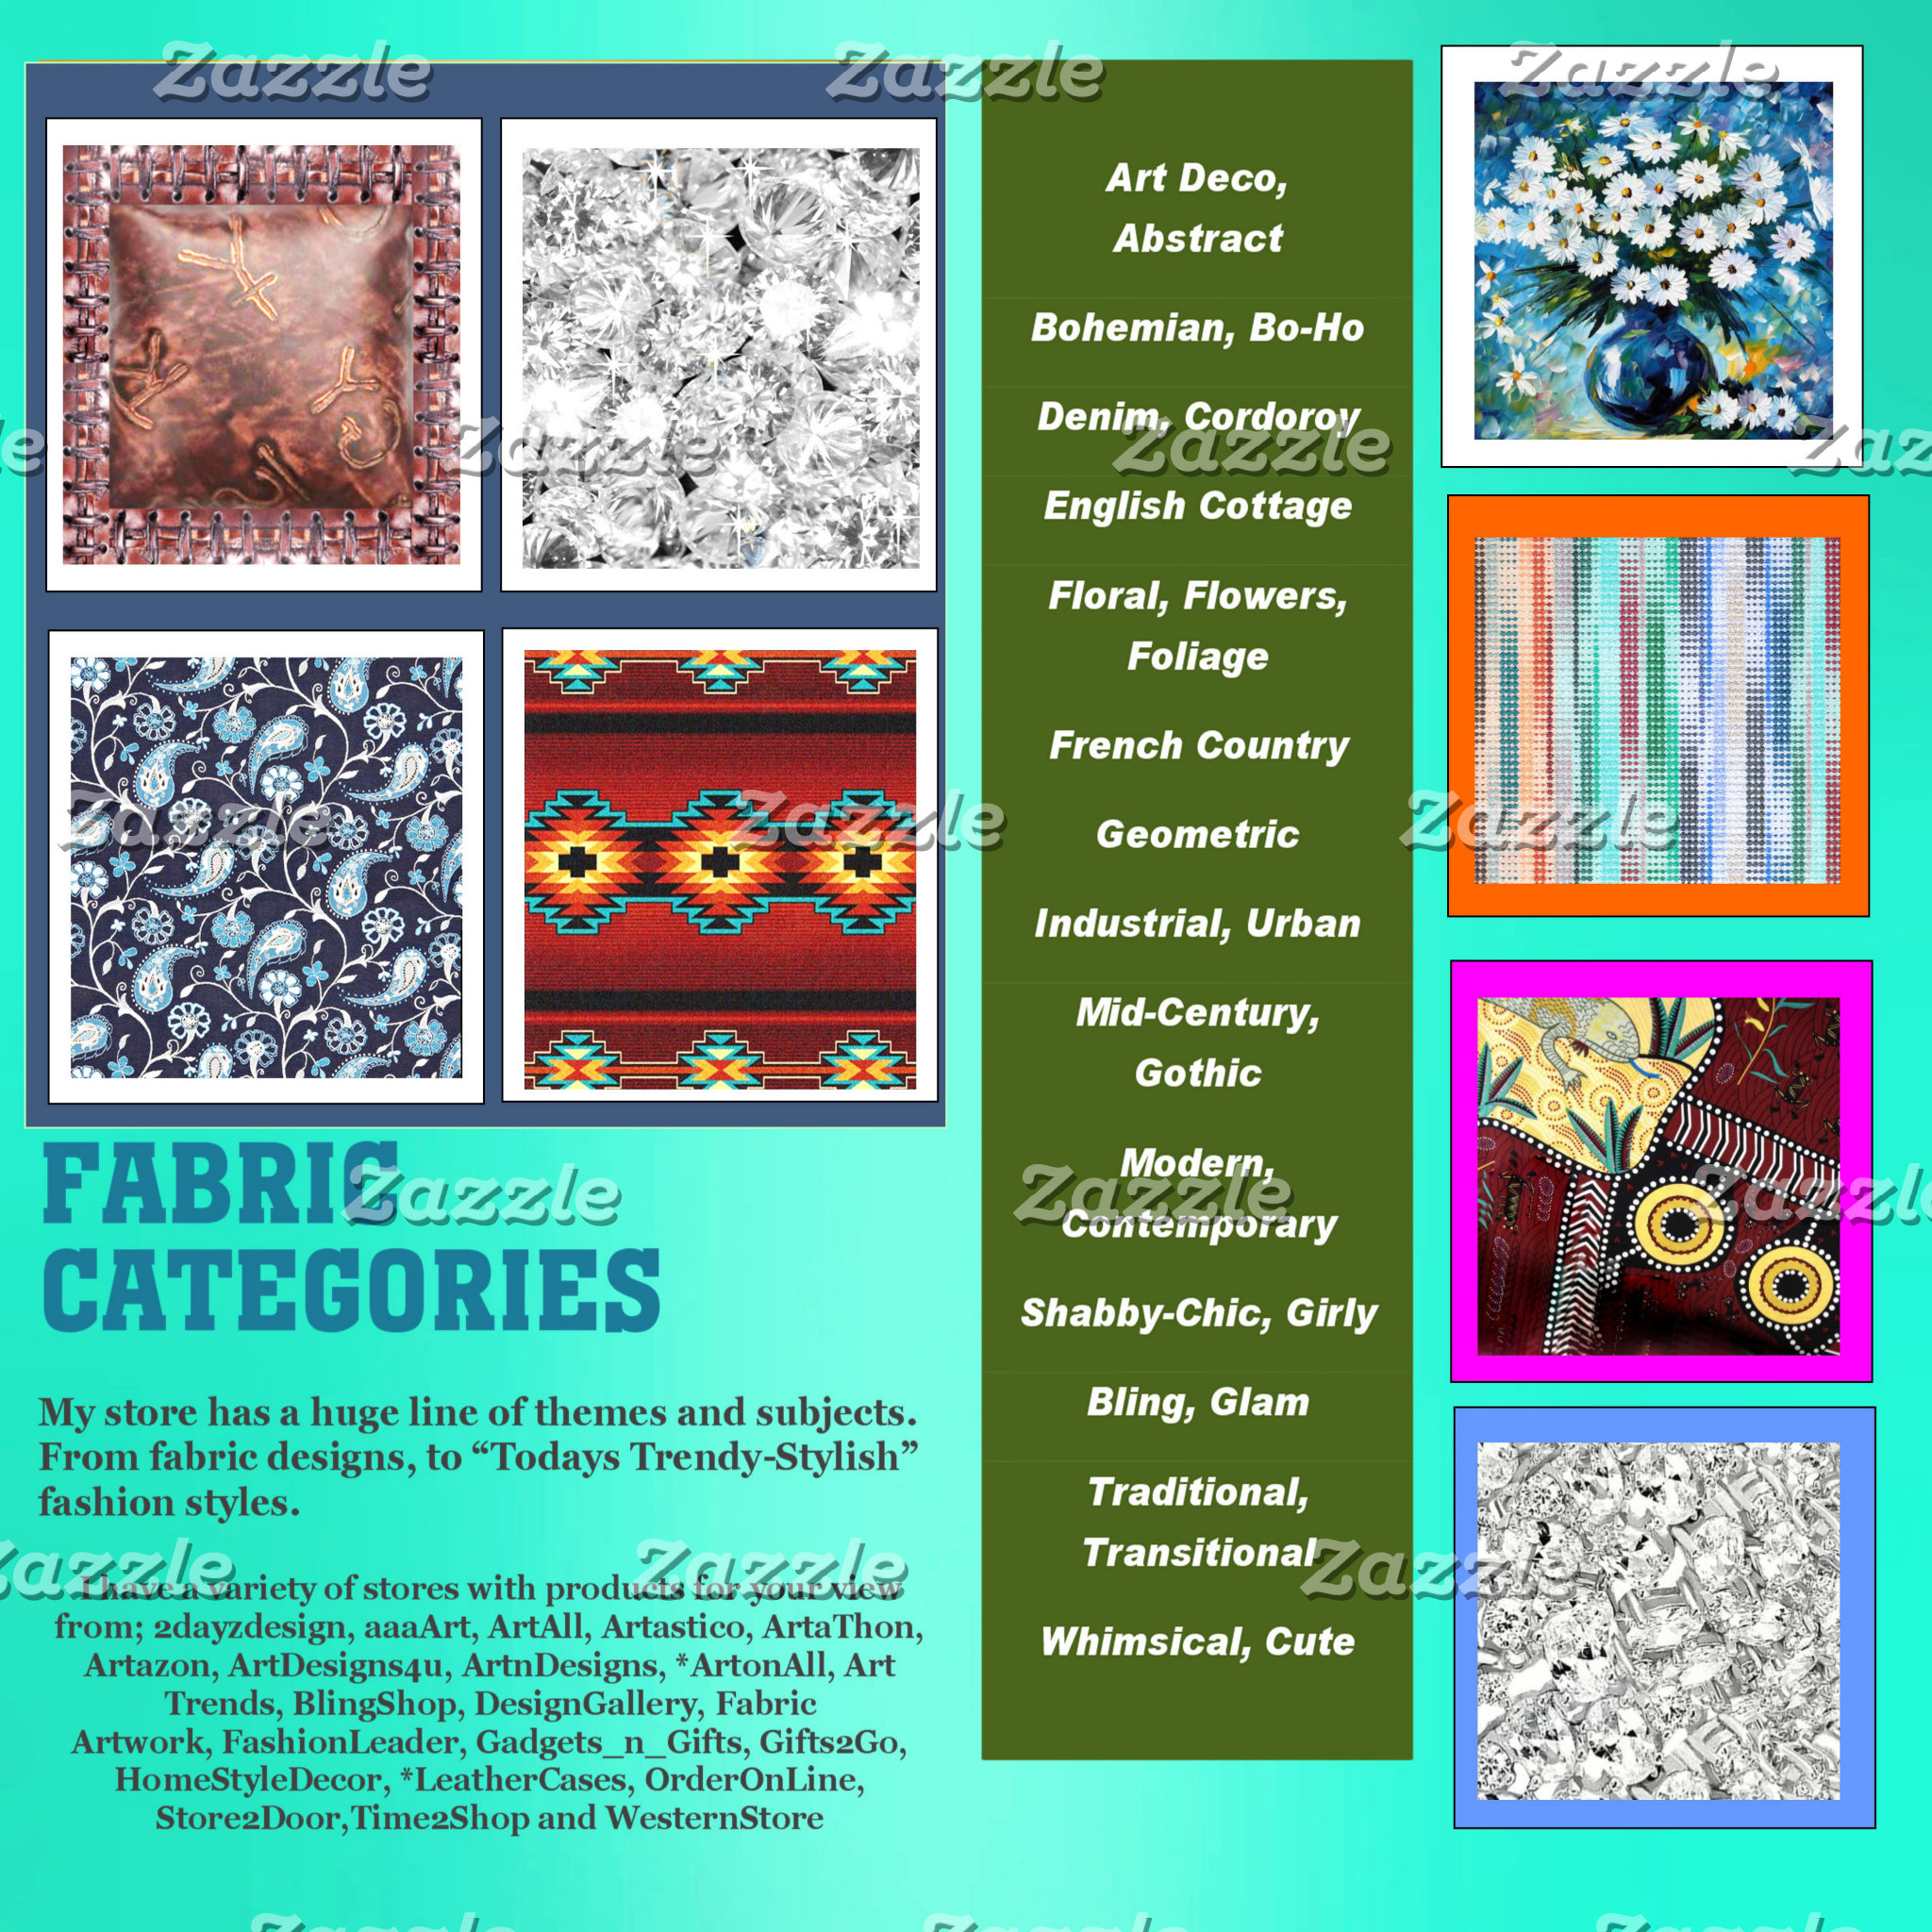 Fabric, CATEGORIES